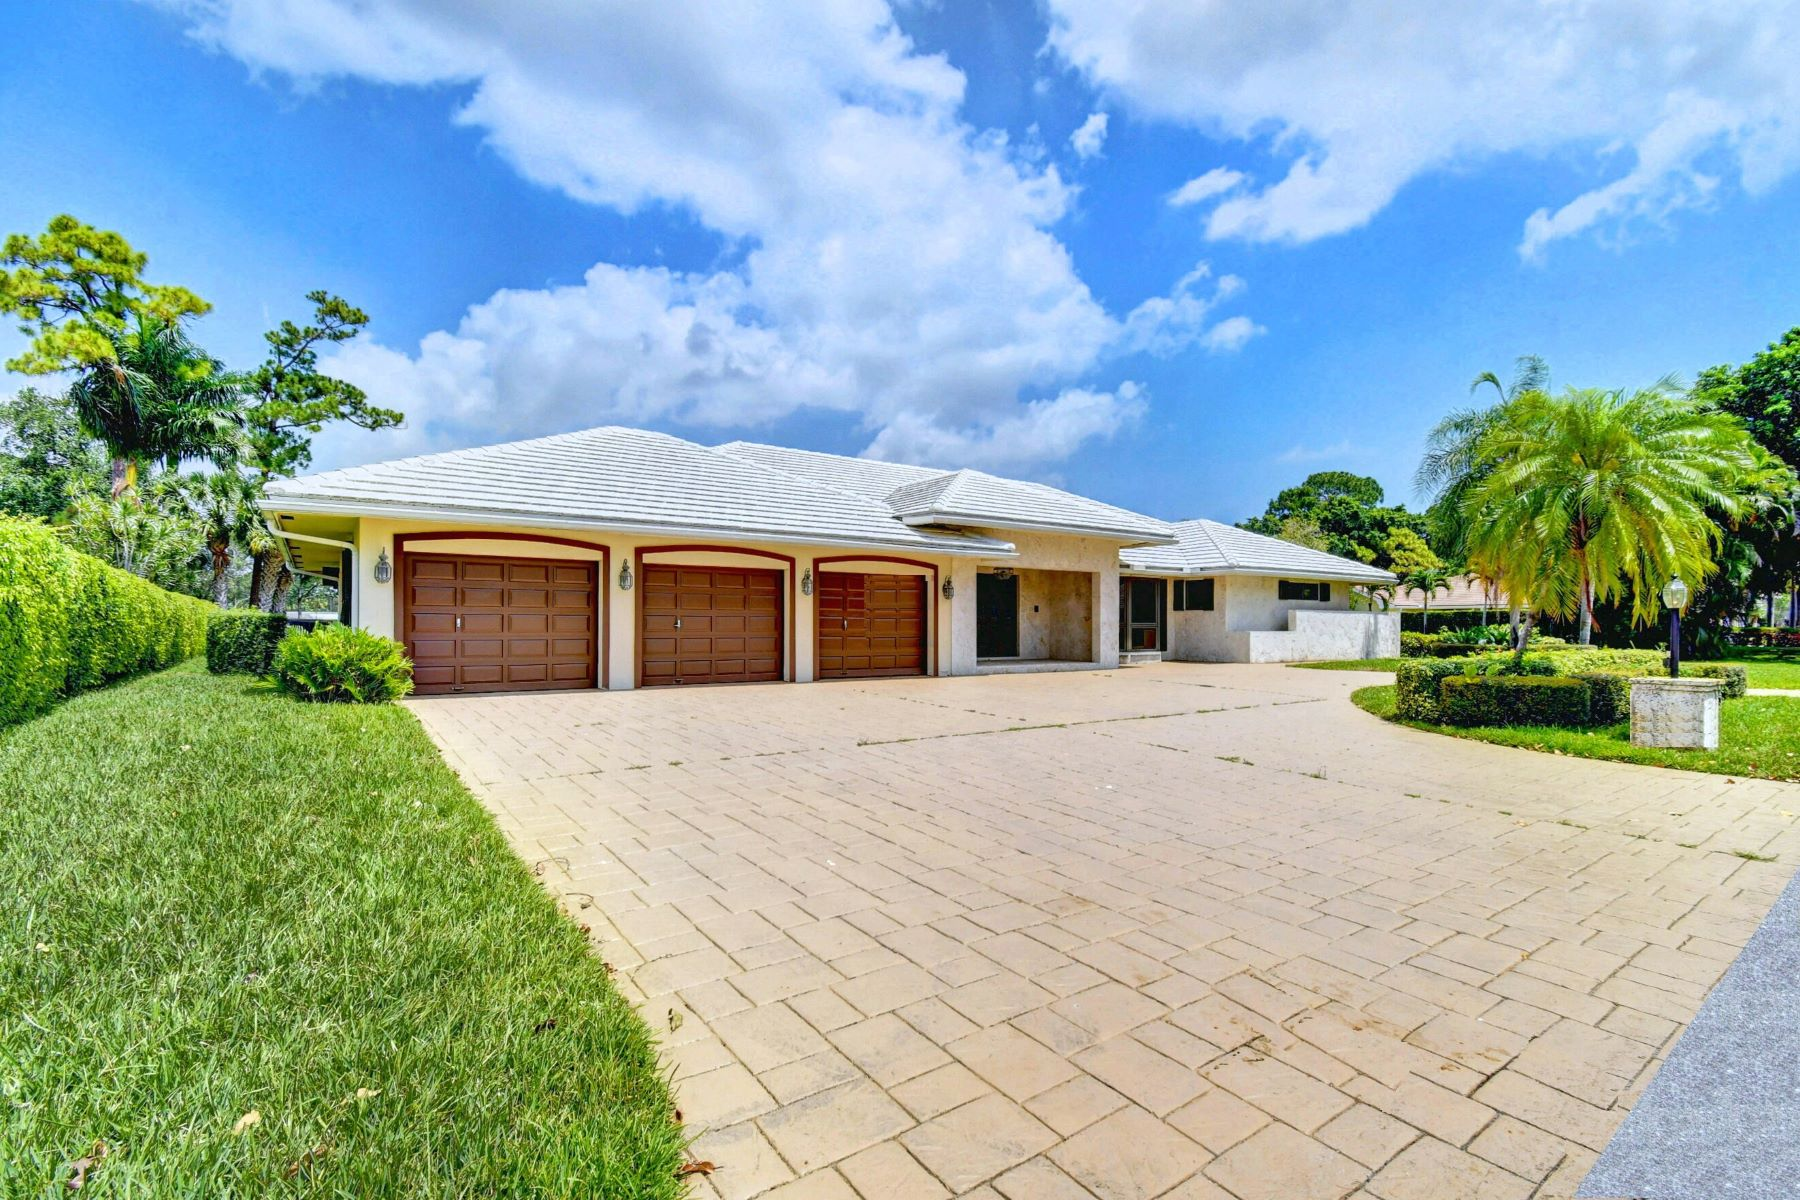 Single Family Homes for Active at 4567 S Lake Drive, Boynton Beach, FL 4567 S Lake Drive Boynton Beach, Florida 33436 United States